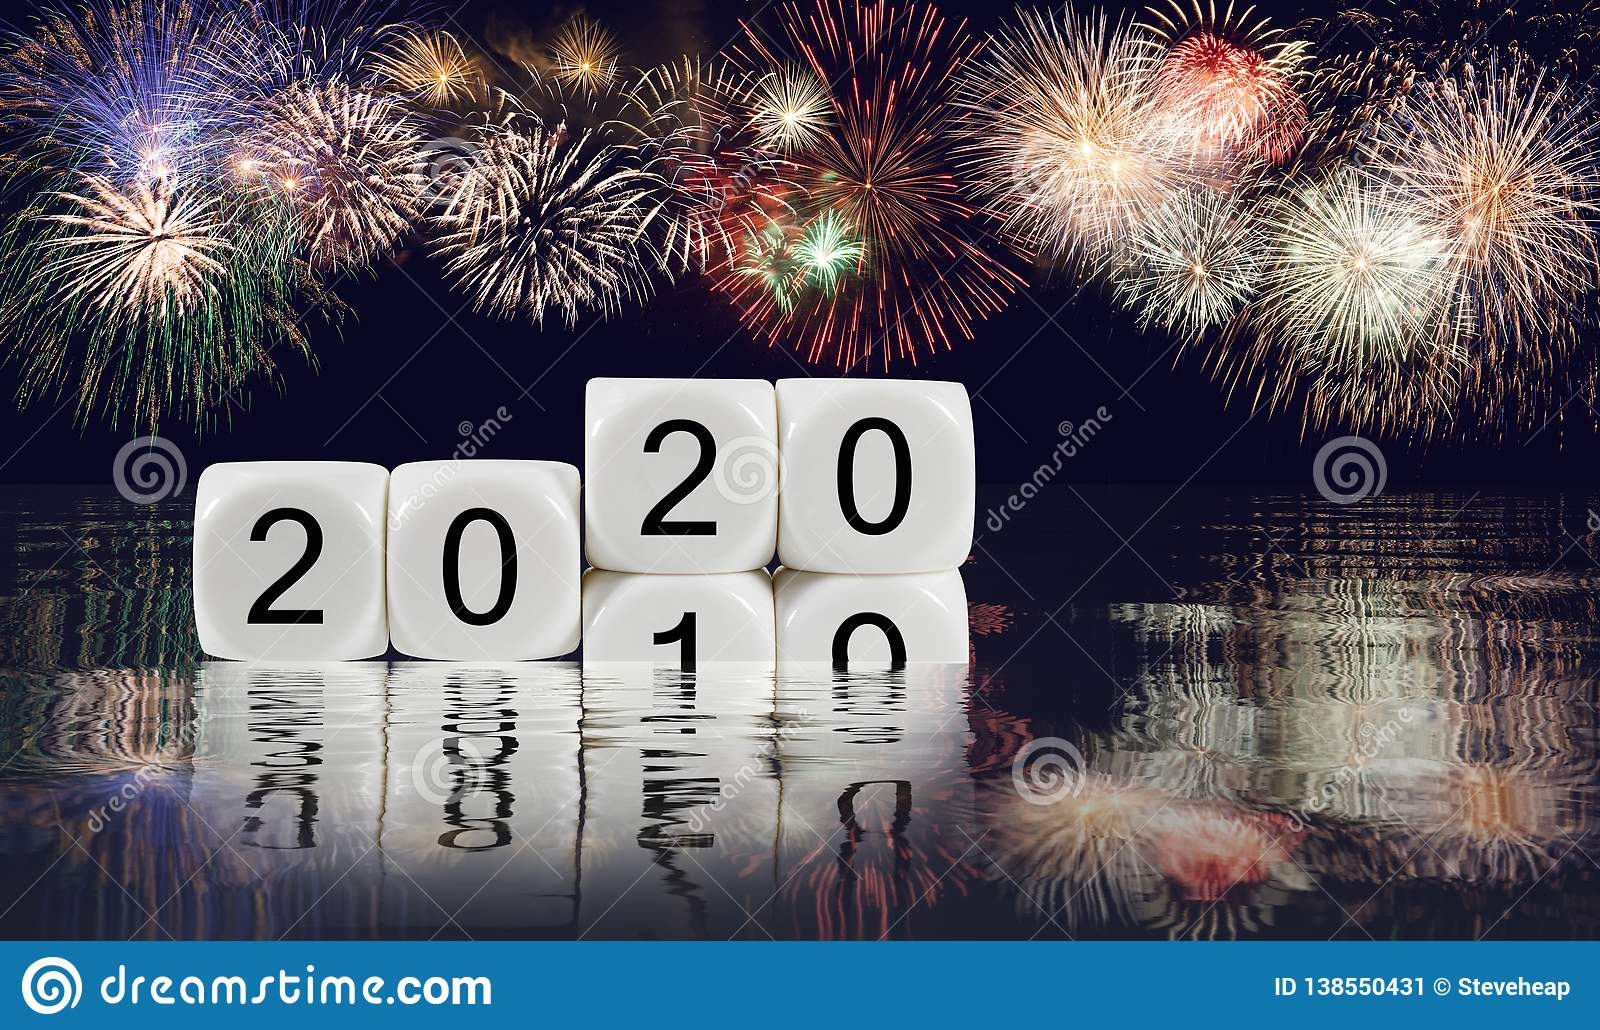 Composite of fireworks for New Year 2020 background